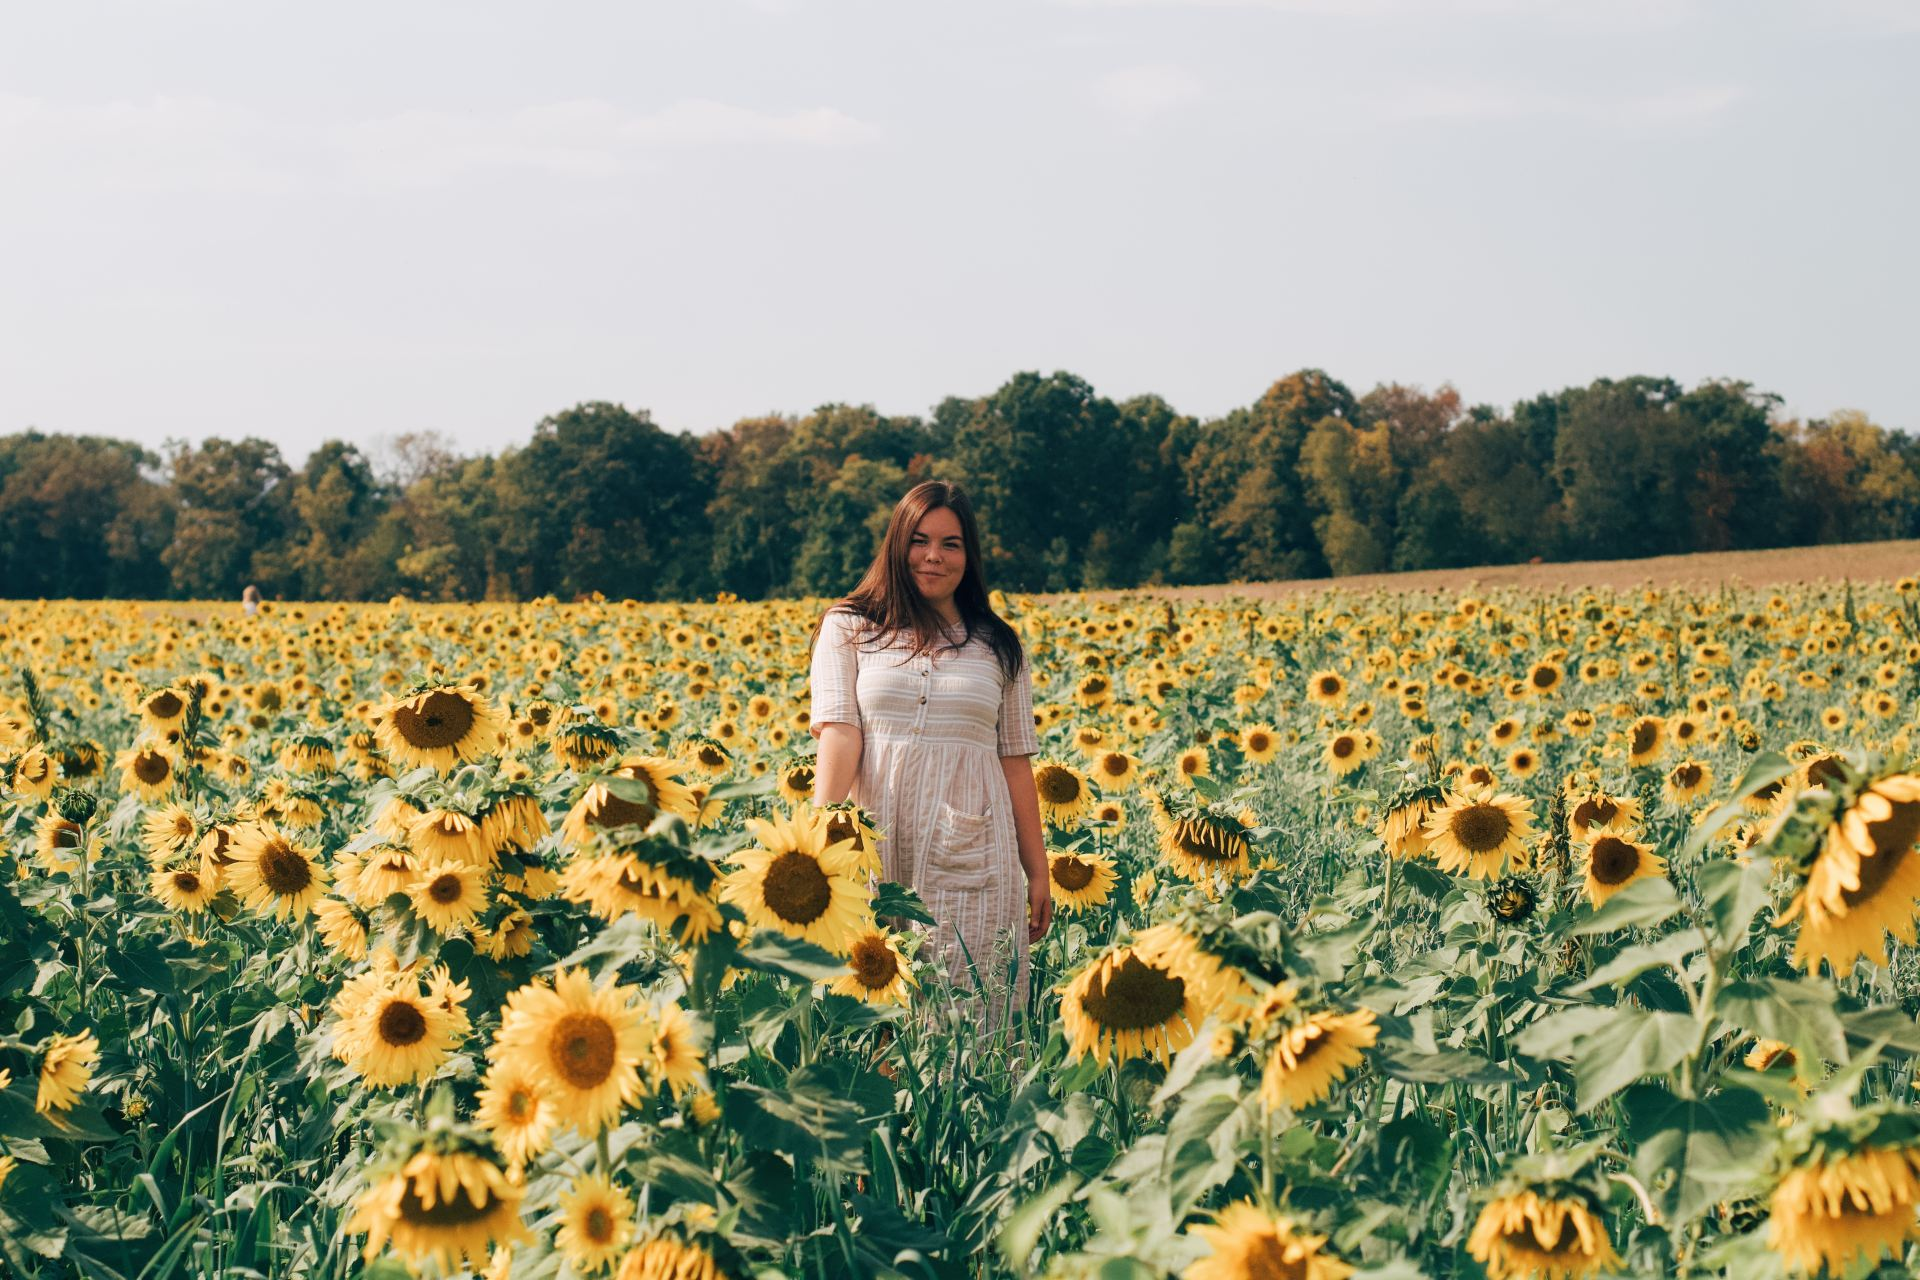 5 Reminders For When You Keep Going Back To Someone Toxic